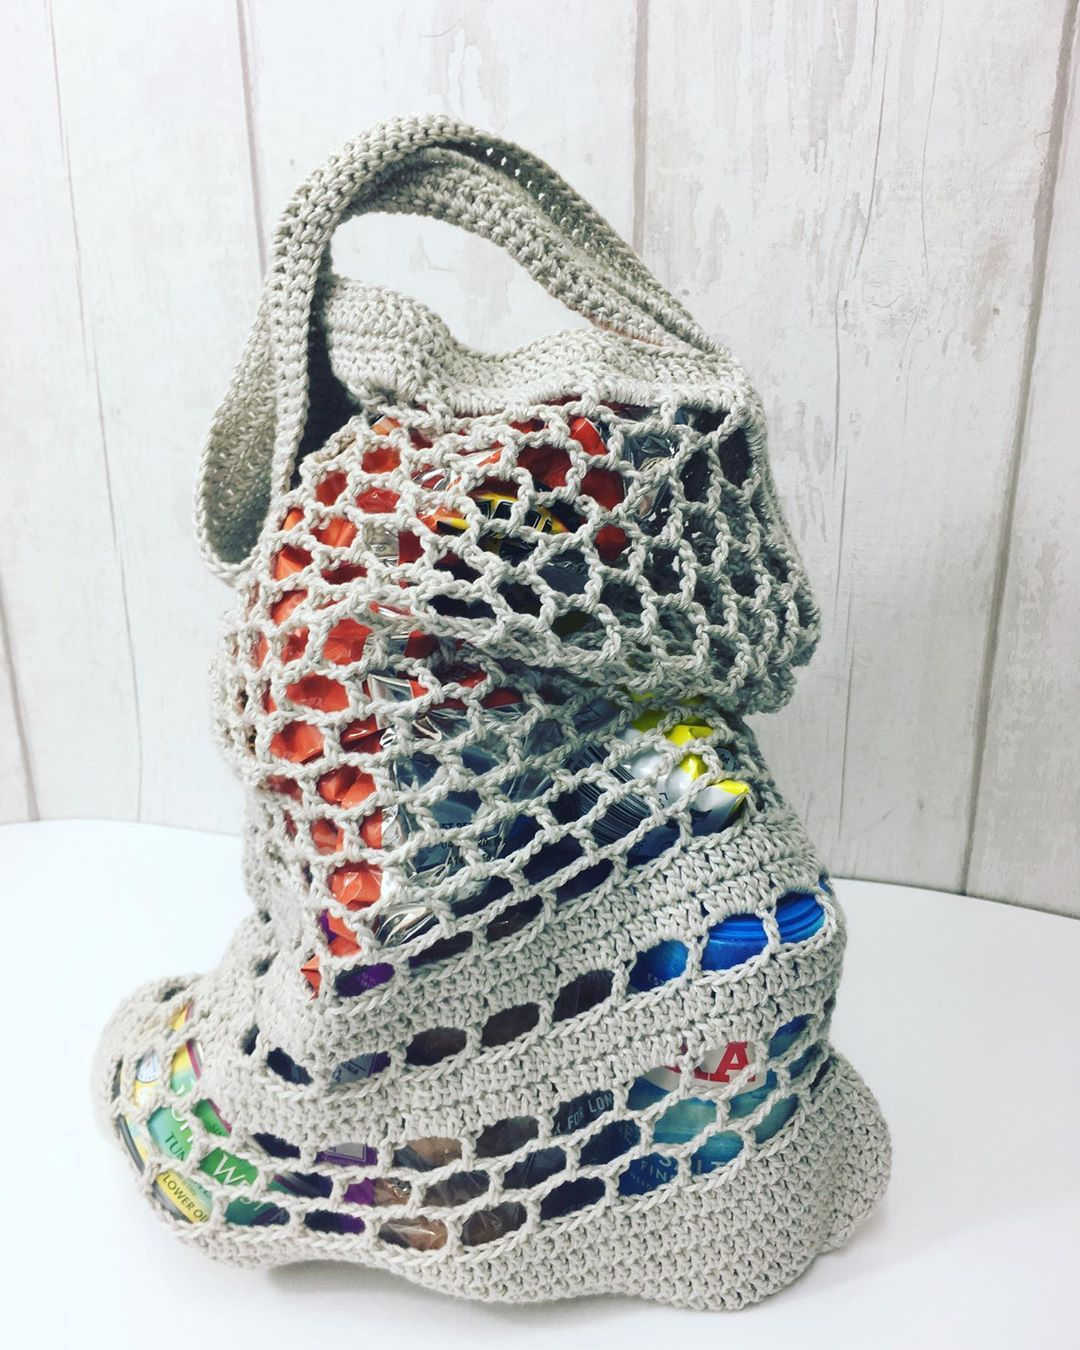 Free shopping bag crocheting pattern